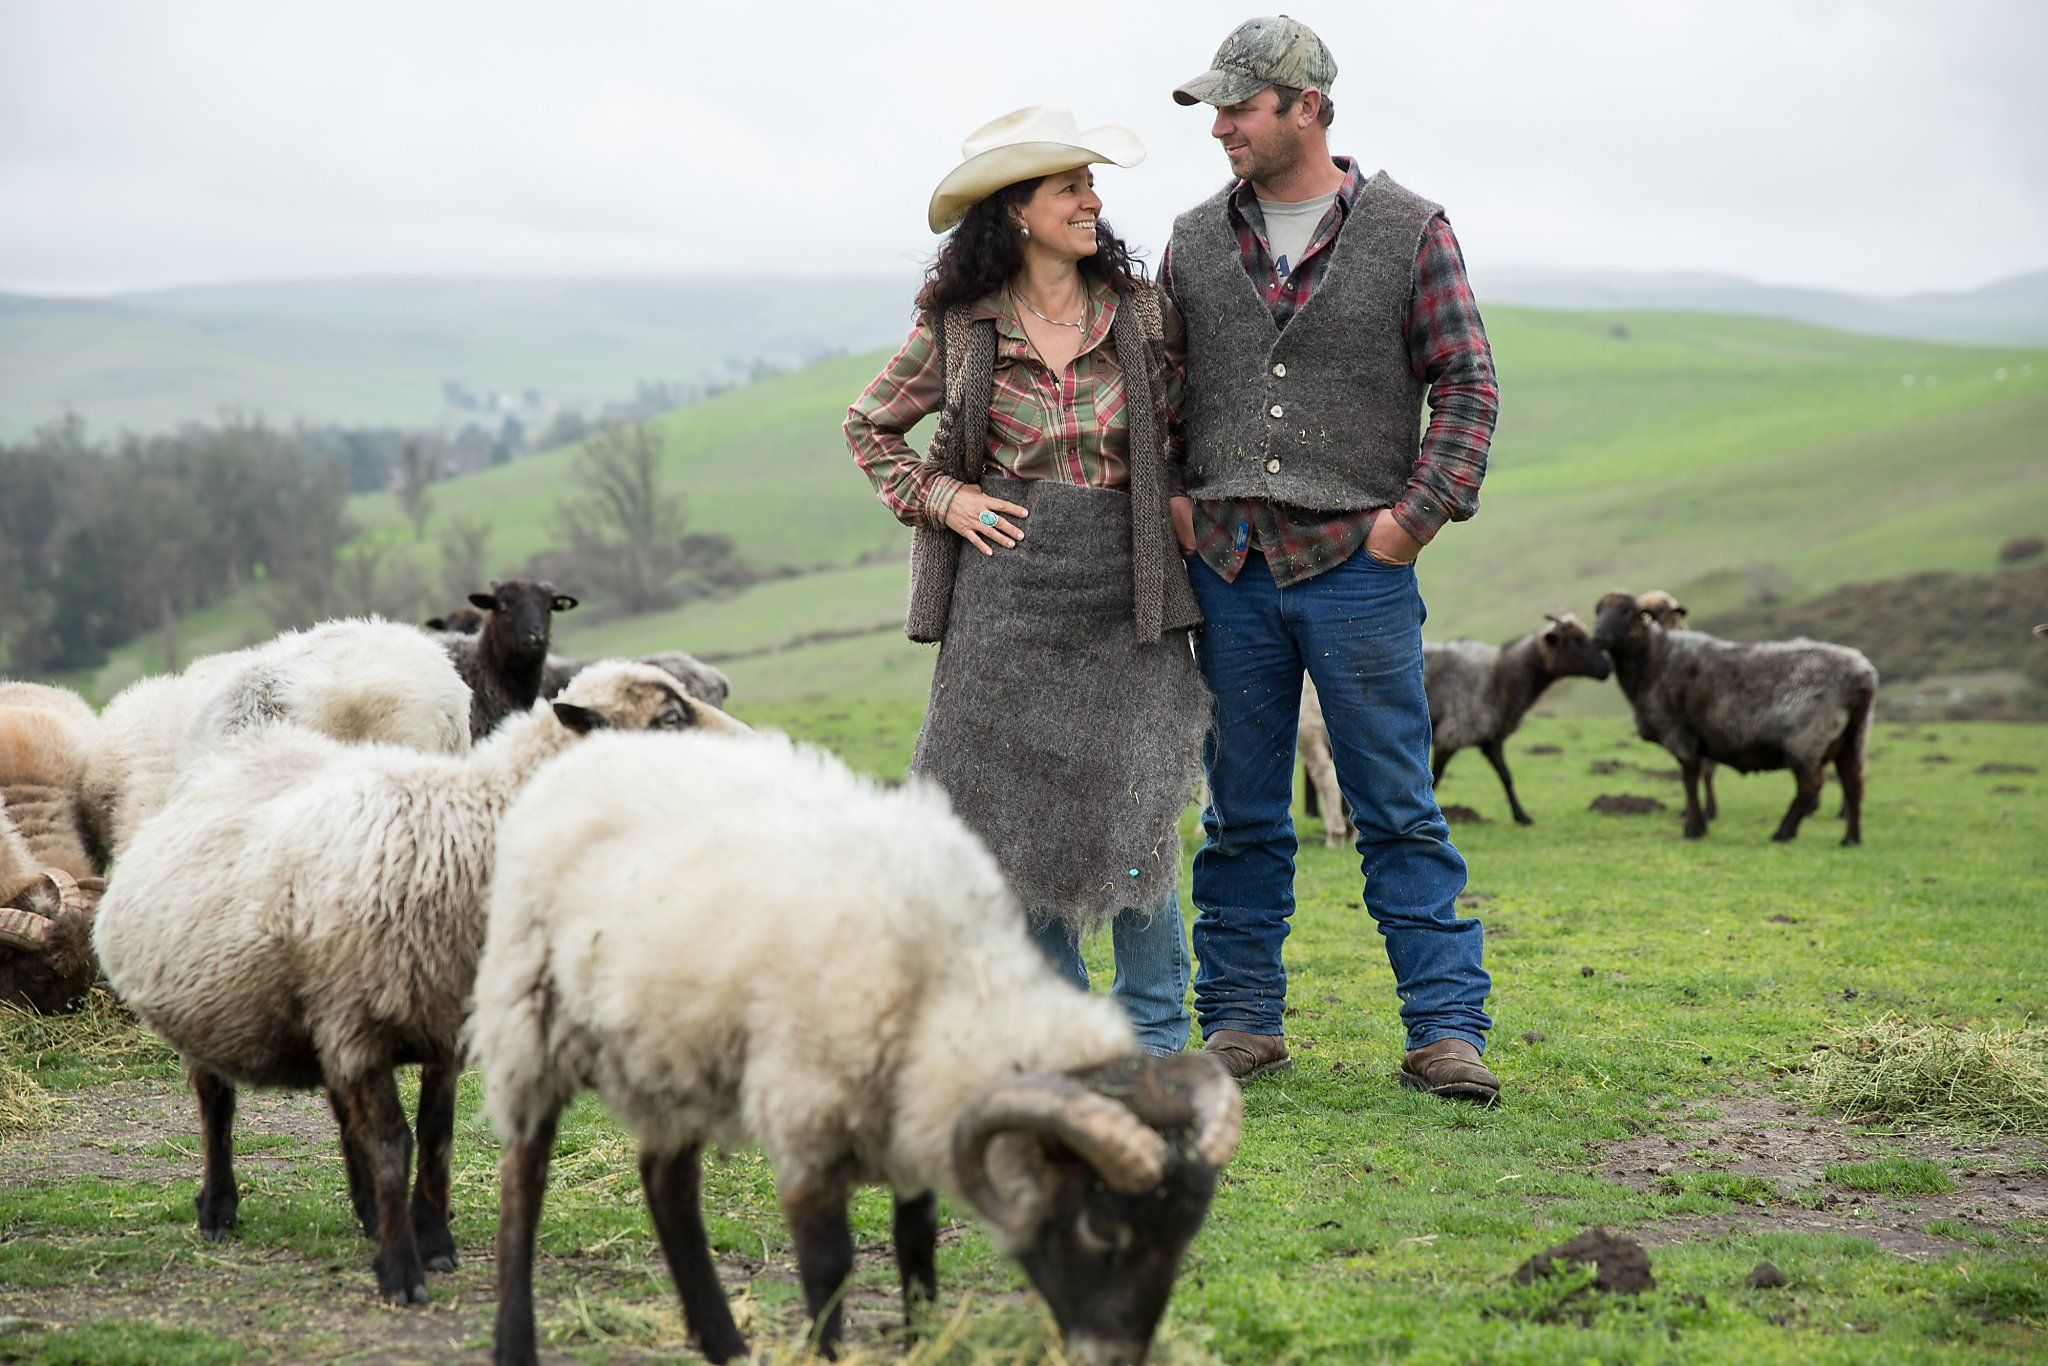 Bay Area's locally grown fibers go straight to bedding